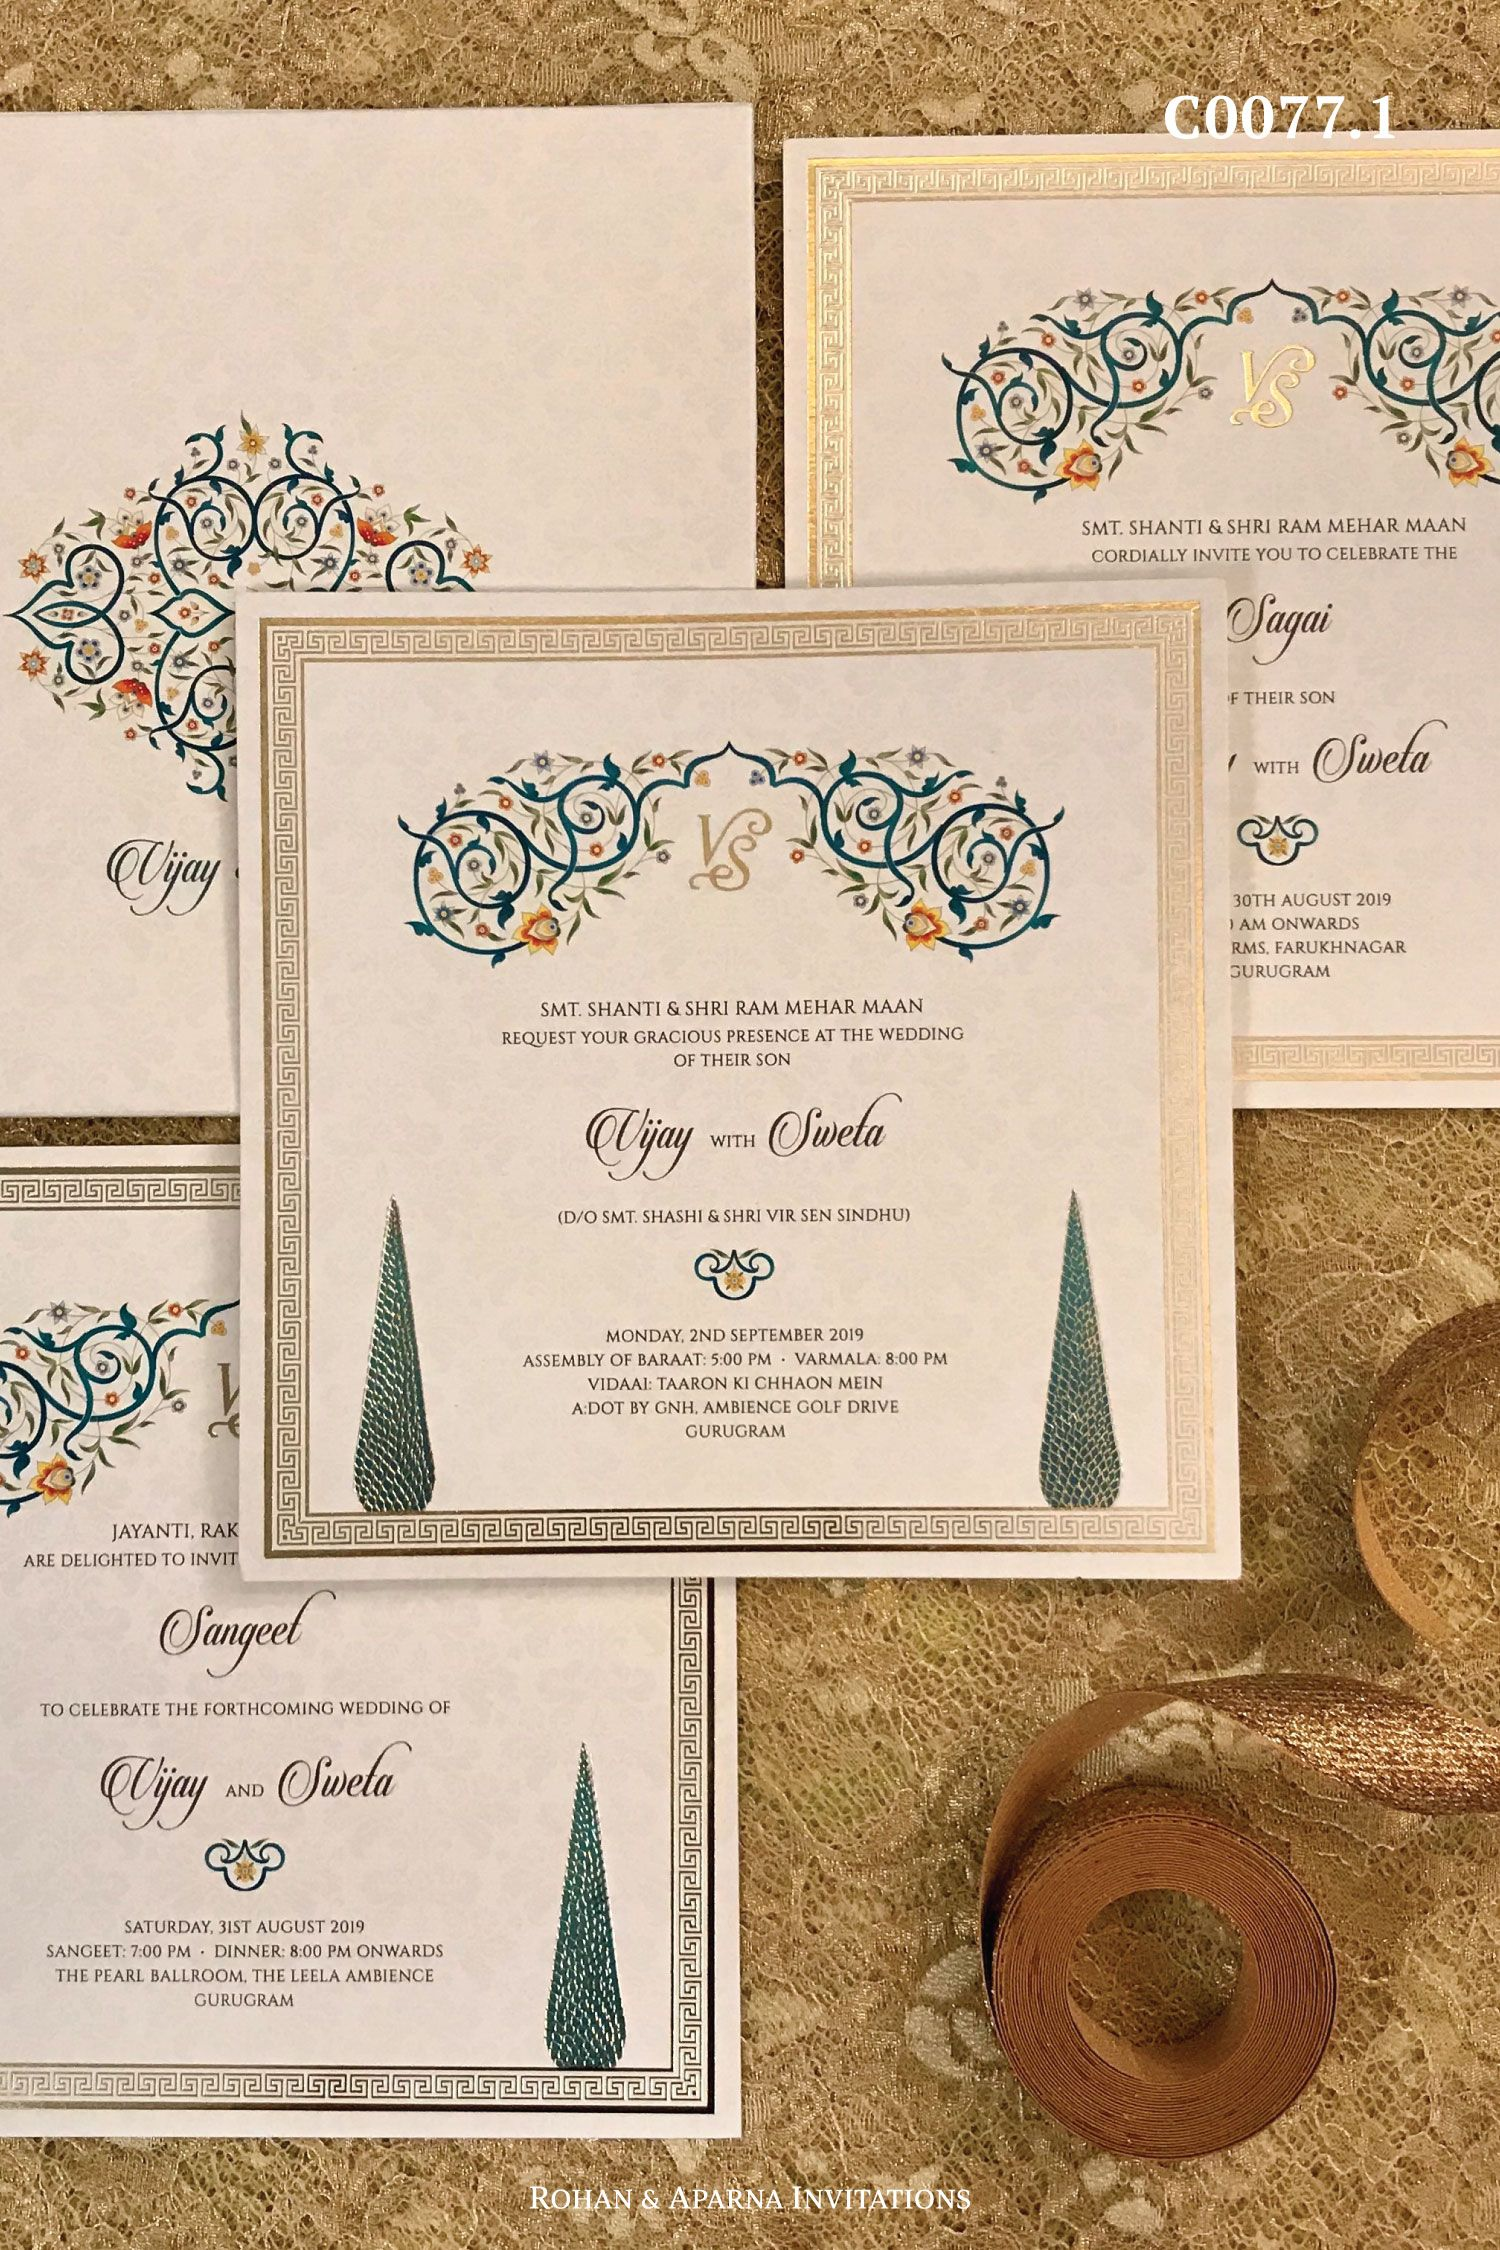 Pin by Nandinee Mengle on Invitation cards in 2020 | Digital invitations  wedding, Indian wedding invitation cards, Wedding invitation cards